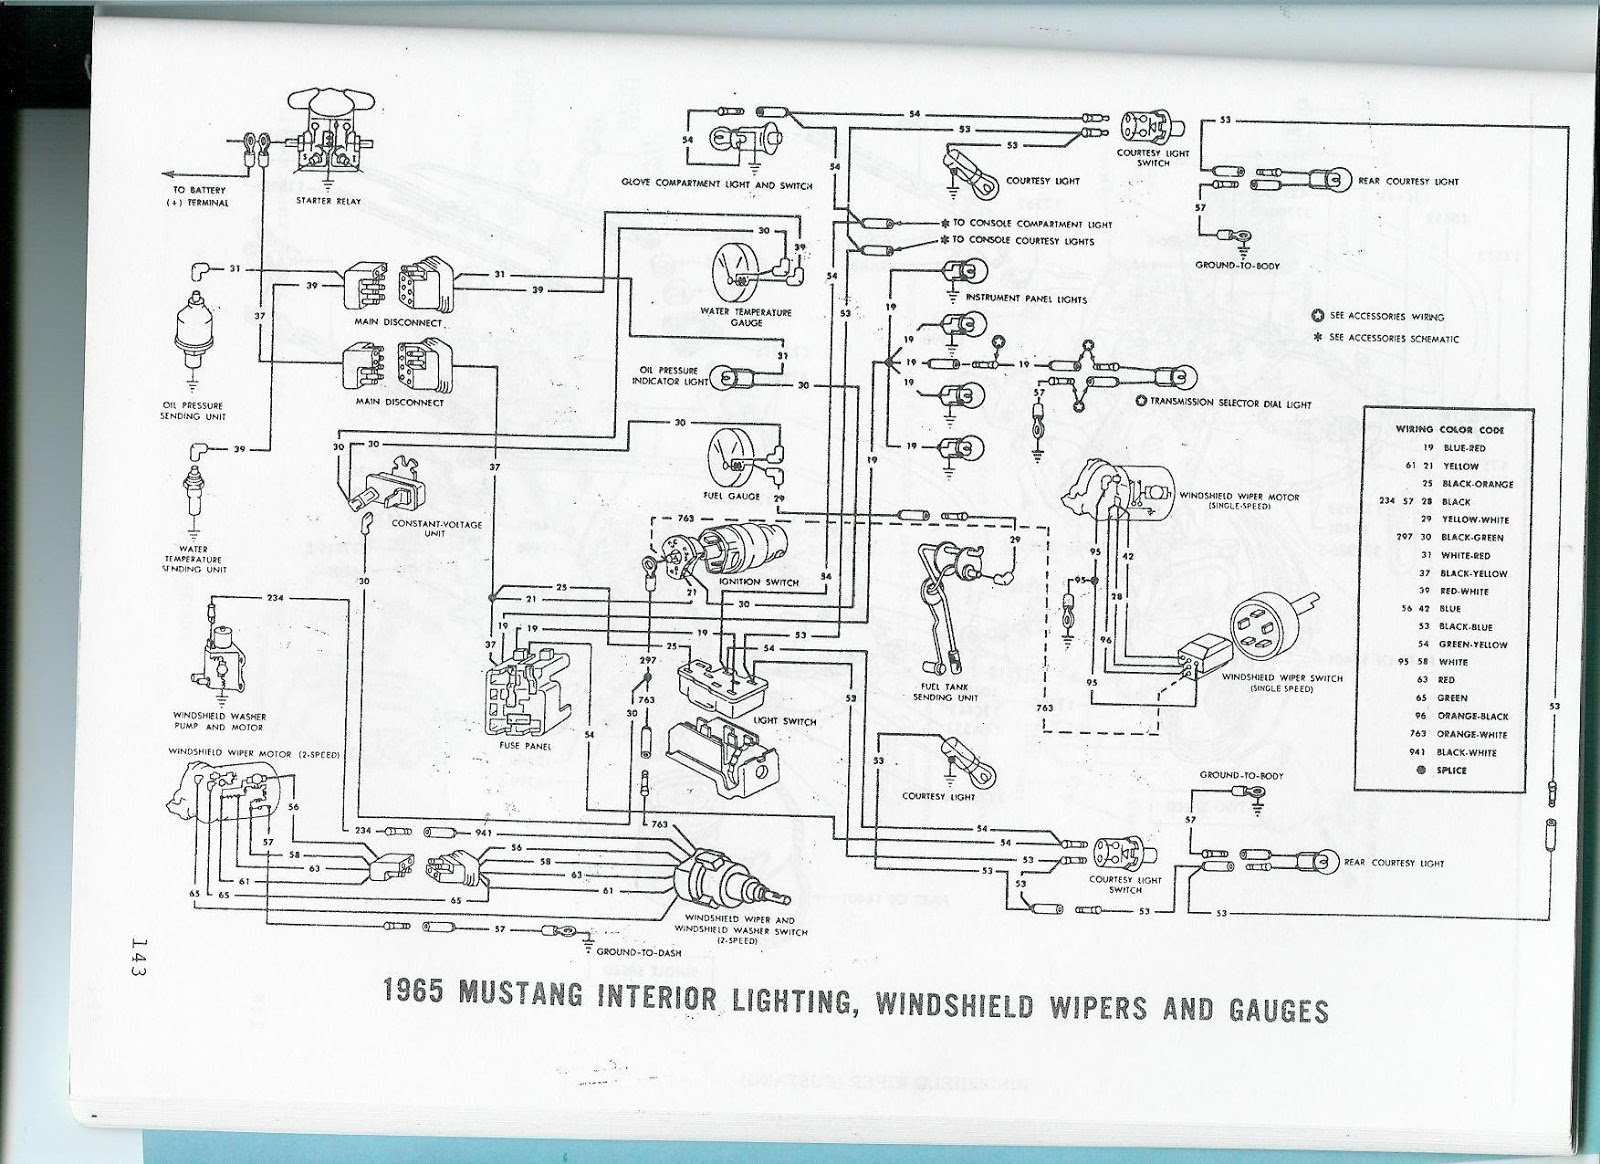 2008 mustang engine wiring diagram the care and feeding of ponies: 1965 mustang wiring diagrams 1987 ford mustang engine wiring diagram